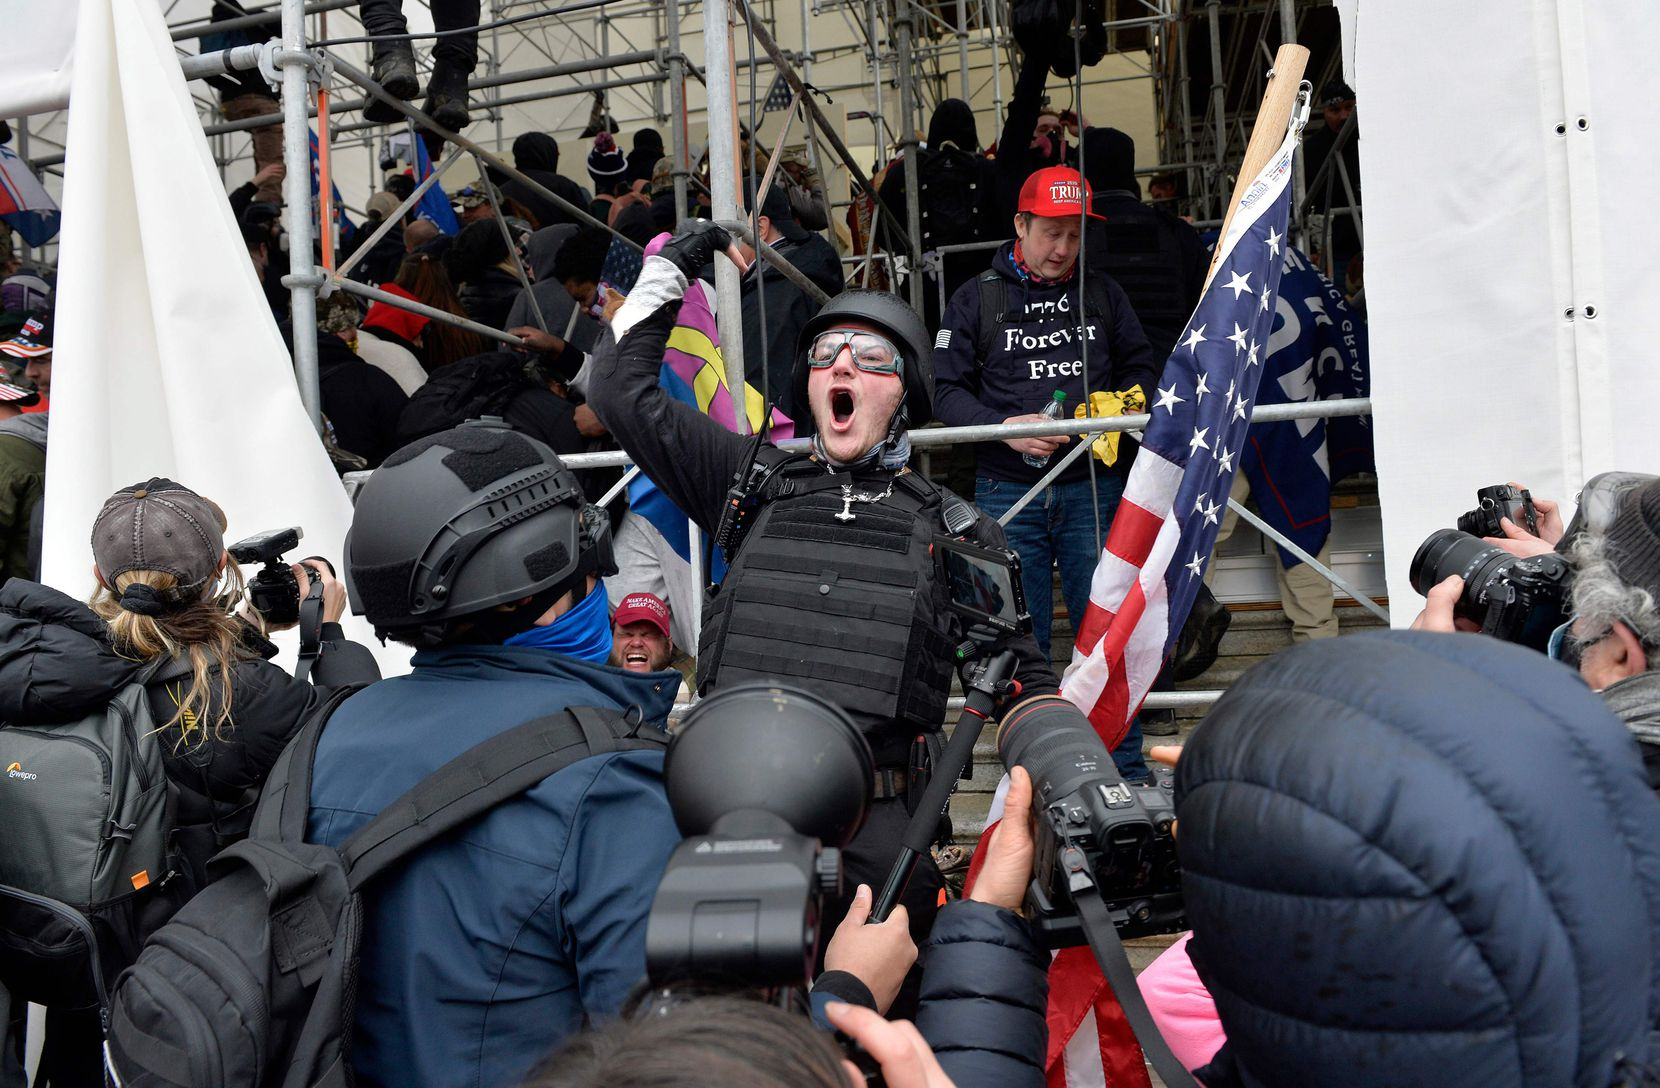 A man calls on people to raid the building as Trump supporters clash with police and security forces as they try to storm the Capital Building in Washington D.C on January 6, 2021. - Demonstrators breeched security and entered the Capitol as Congress debated the a 2020 presidential election Electoral Vote Certification. (Photo by Joseph Prezioso / AFP) (Photo by JOSEPH PREZIOSO/AFP via Getty Images)